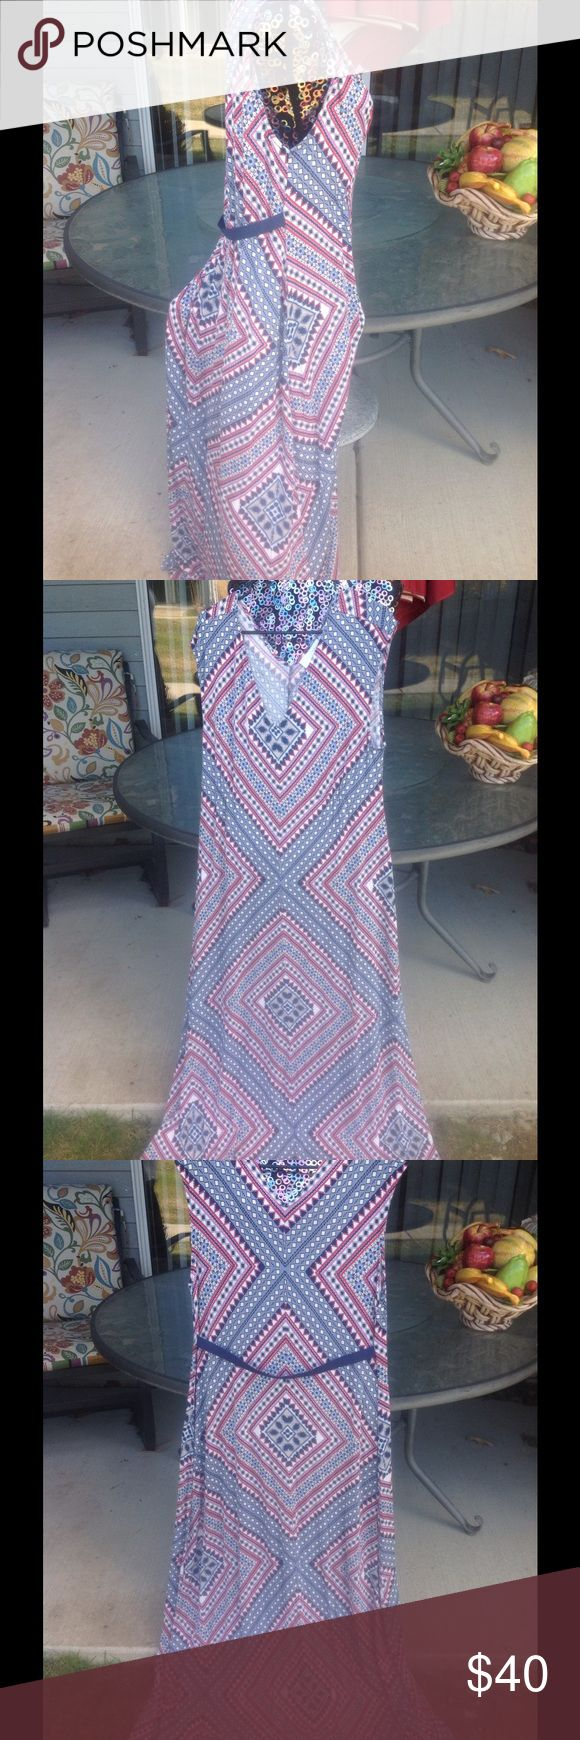 Jessica Simpson maternity maxi dress size xl From Jessica Simpson  maternity soft stretch cotton multi color maxi dress  sleeveless belted back great Preowned condition Jessica Simpson Dresses Maxi